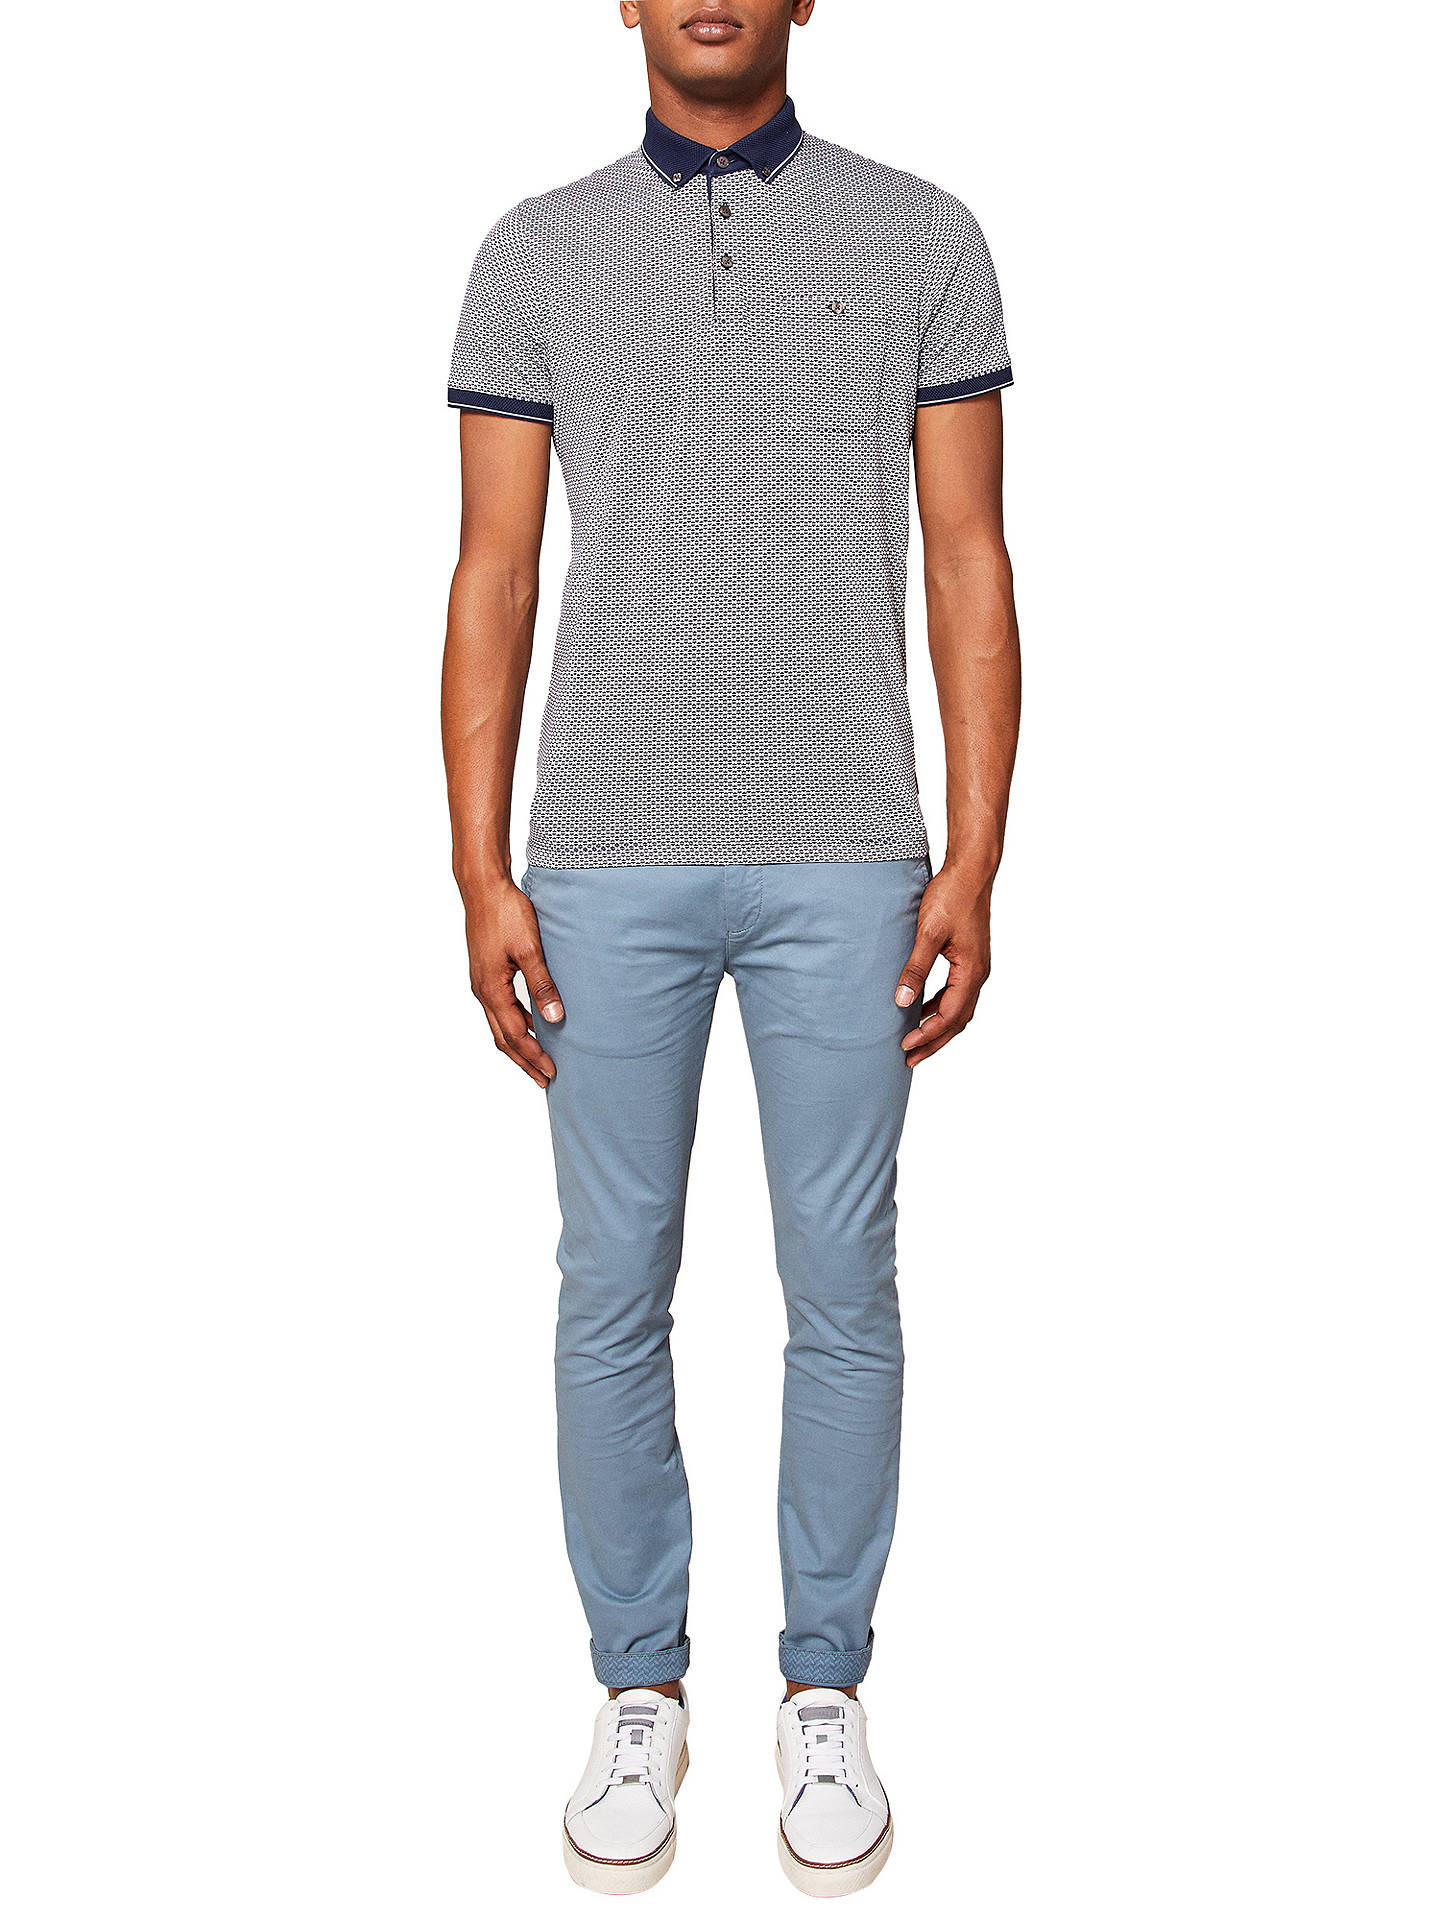 4f35834f1 Ted Baker Tapcor Tapered Chinos at John Lewis   Partners